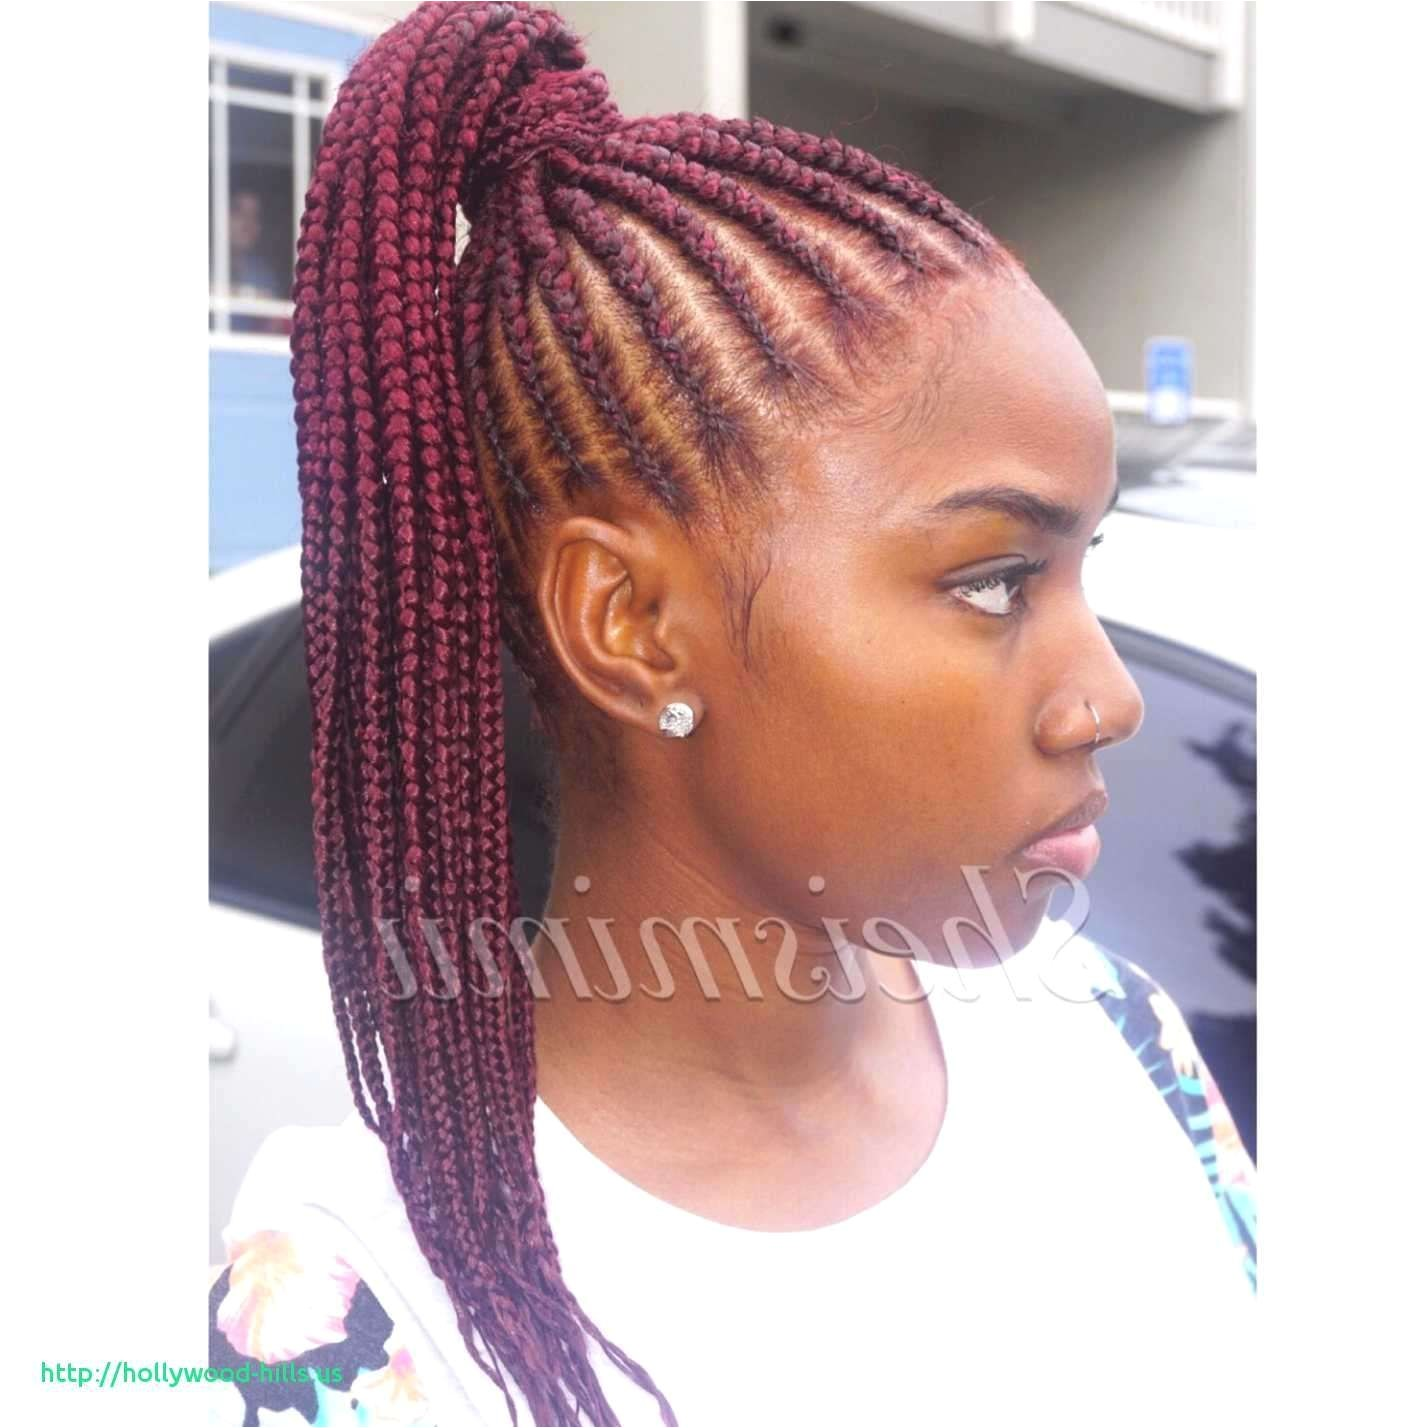 Mohawk Braids Hairstyles Pictures Braid Hairstyles Black Black Hairstyles Mohawks Elegant Braided